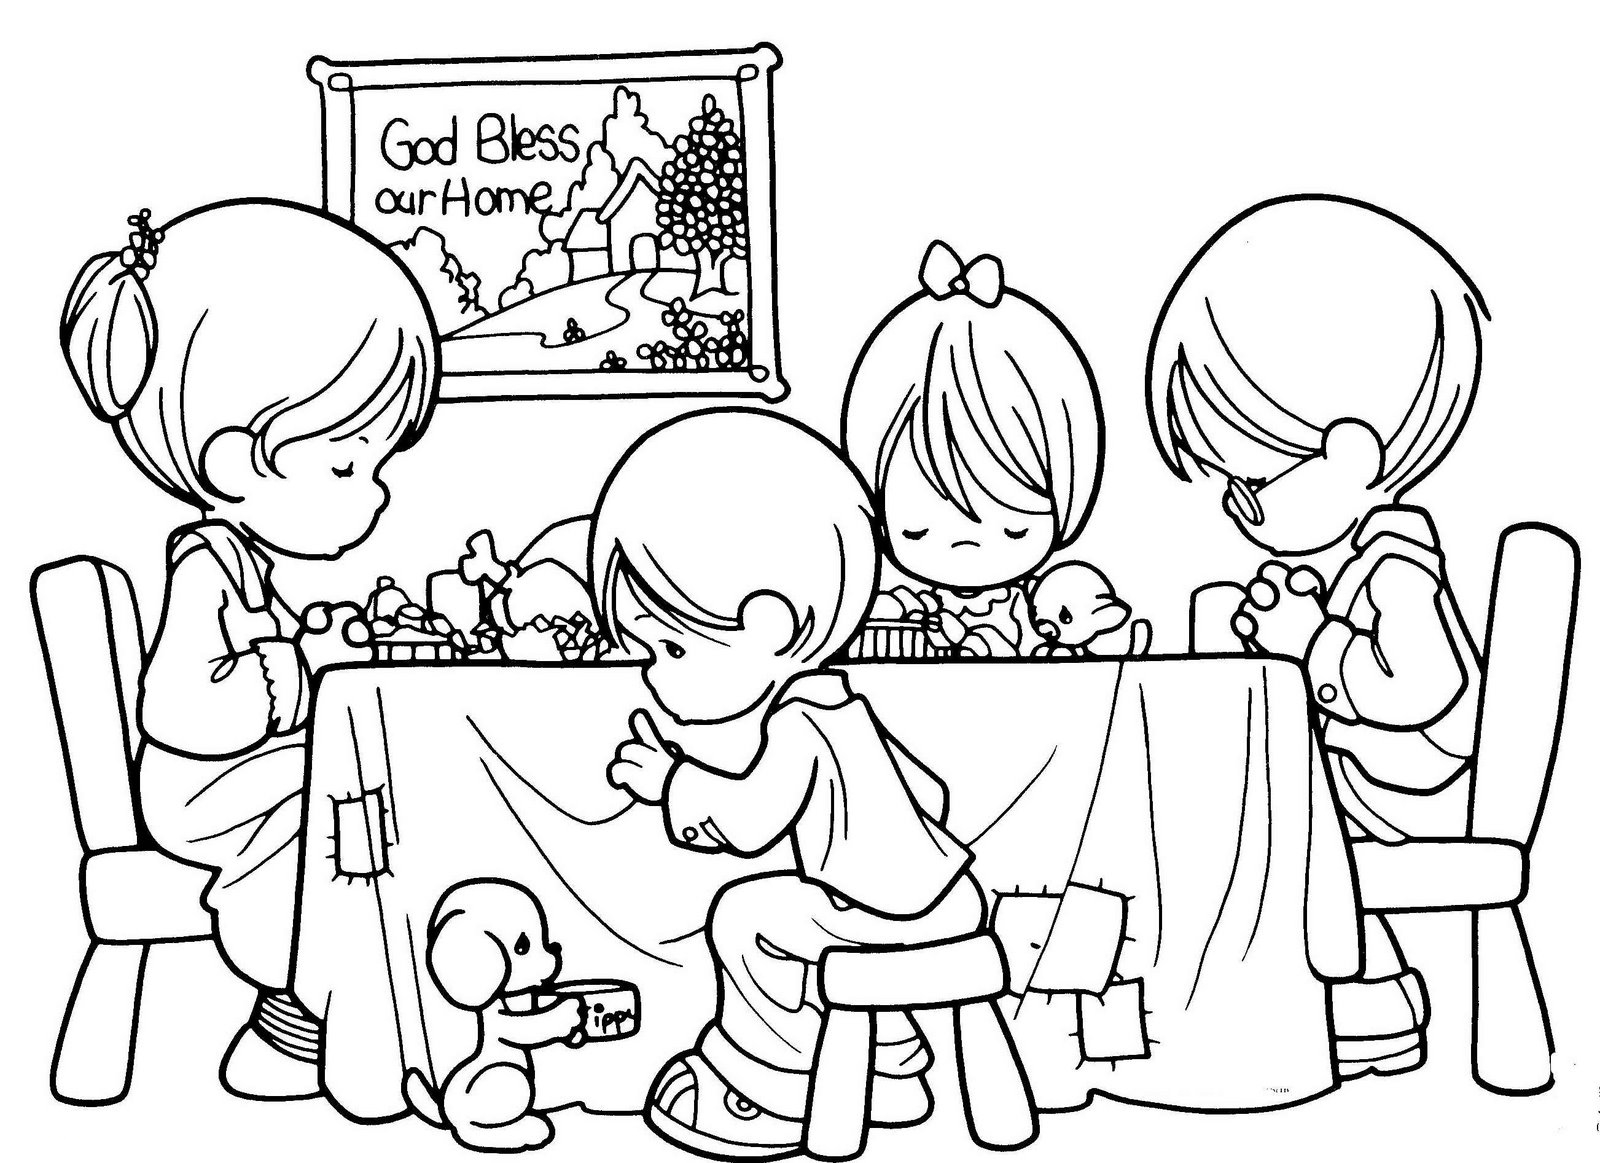 children christian coloring pages - photo#24